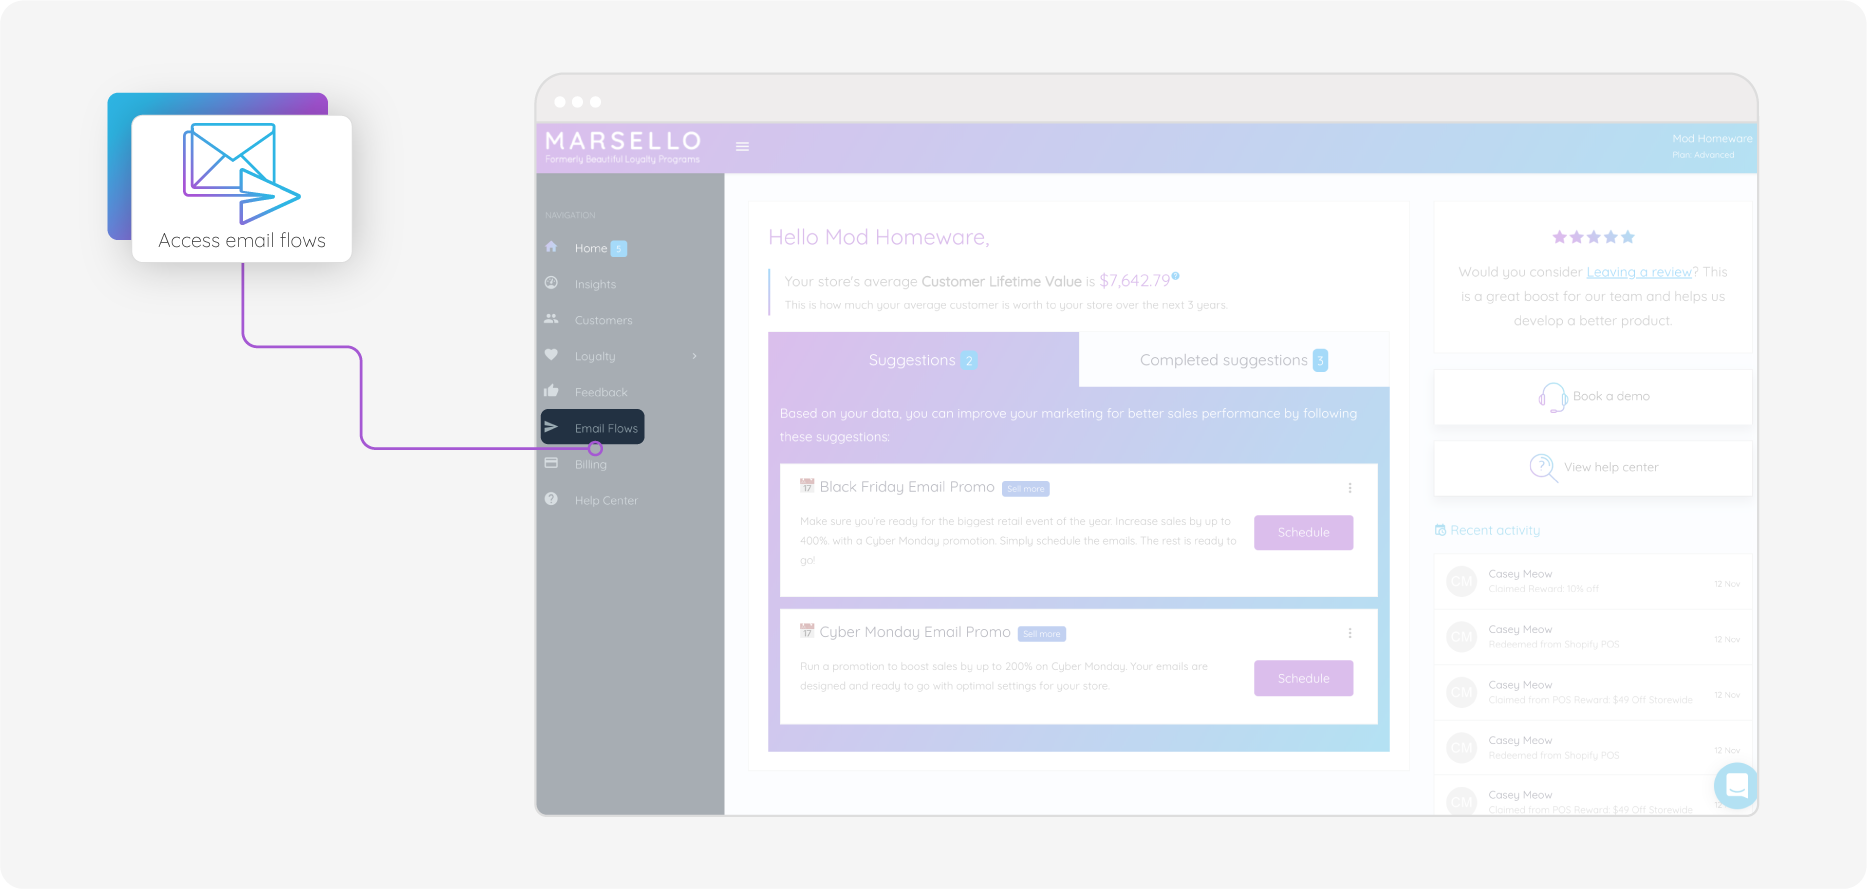 Marsello Interface With Email Flow Button Highlighted